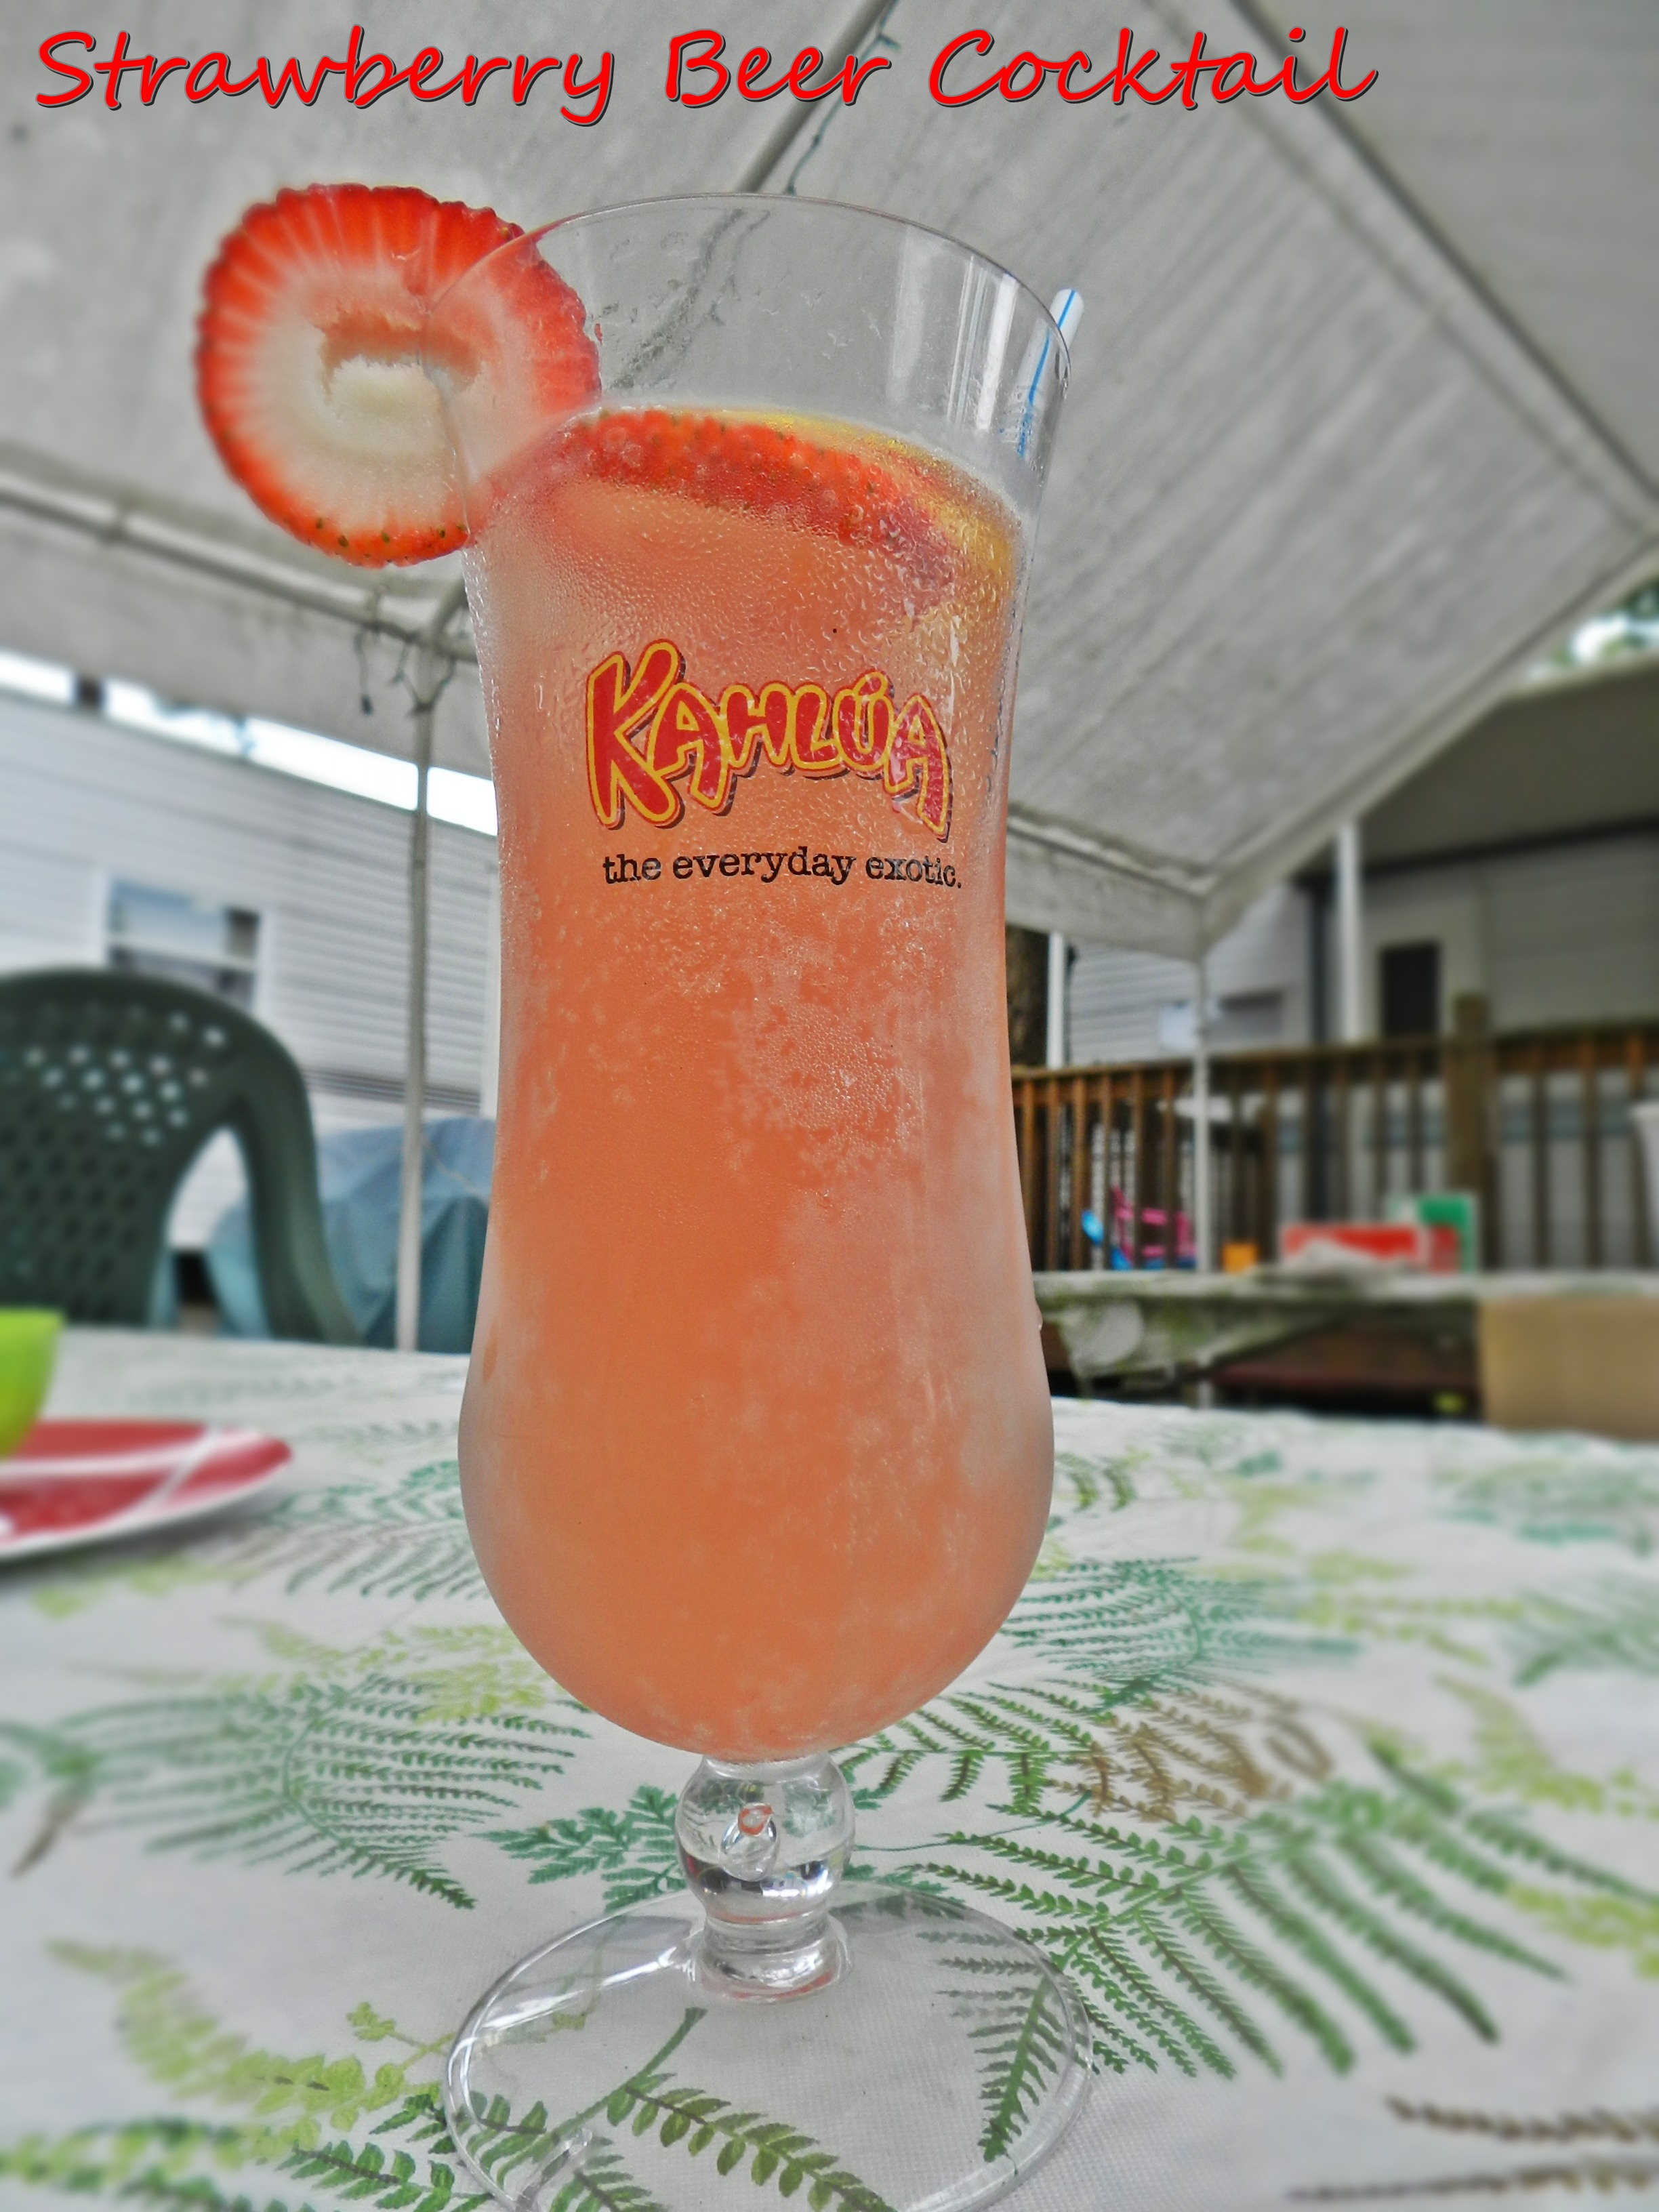 Strawberry Beer Cocktail (1)